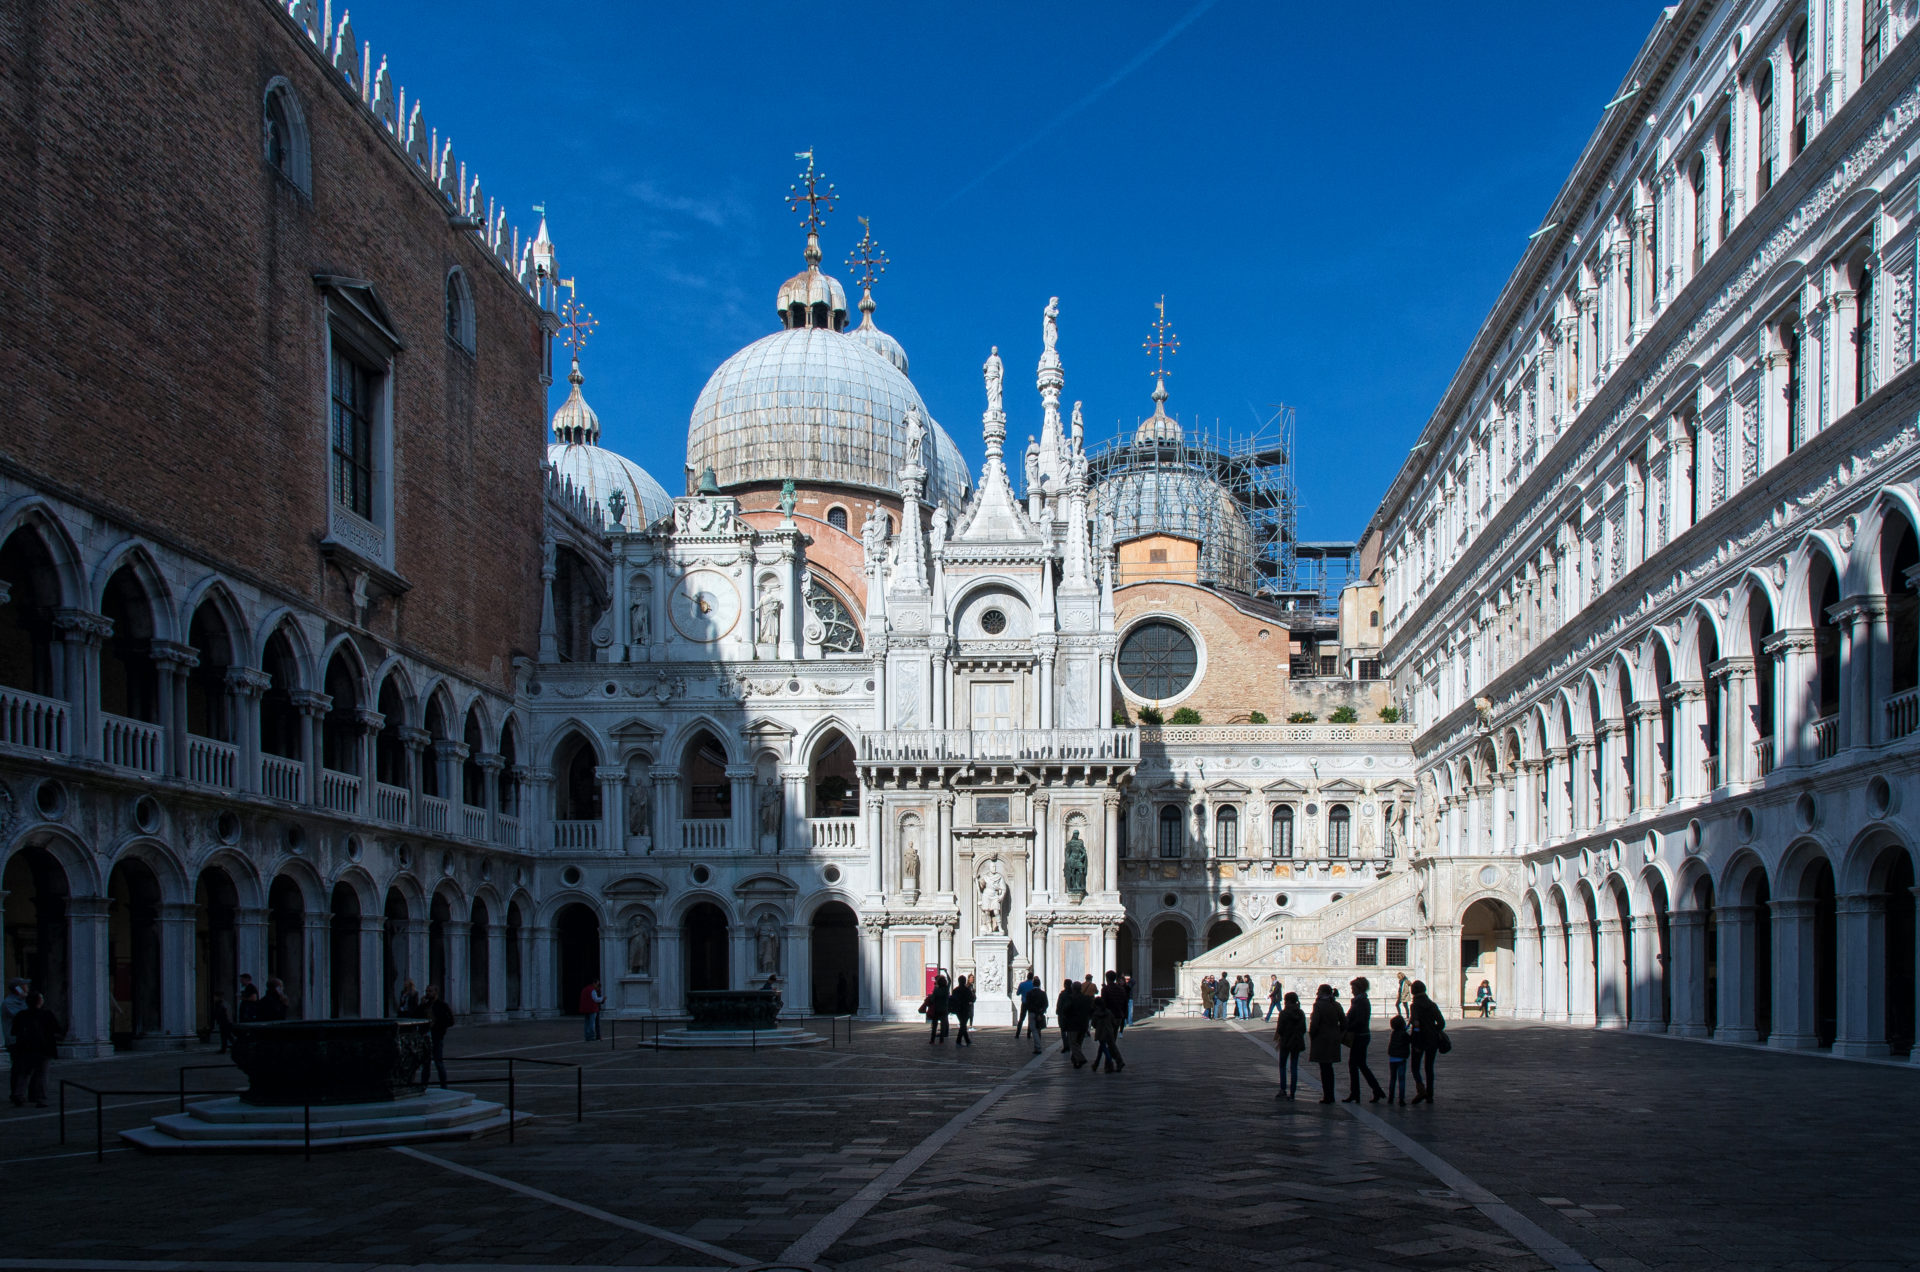 """Venezia"" photo by Raphaël Chekroun (some rights reserved)"